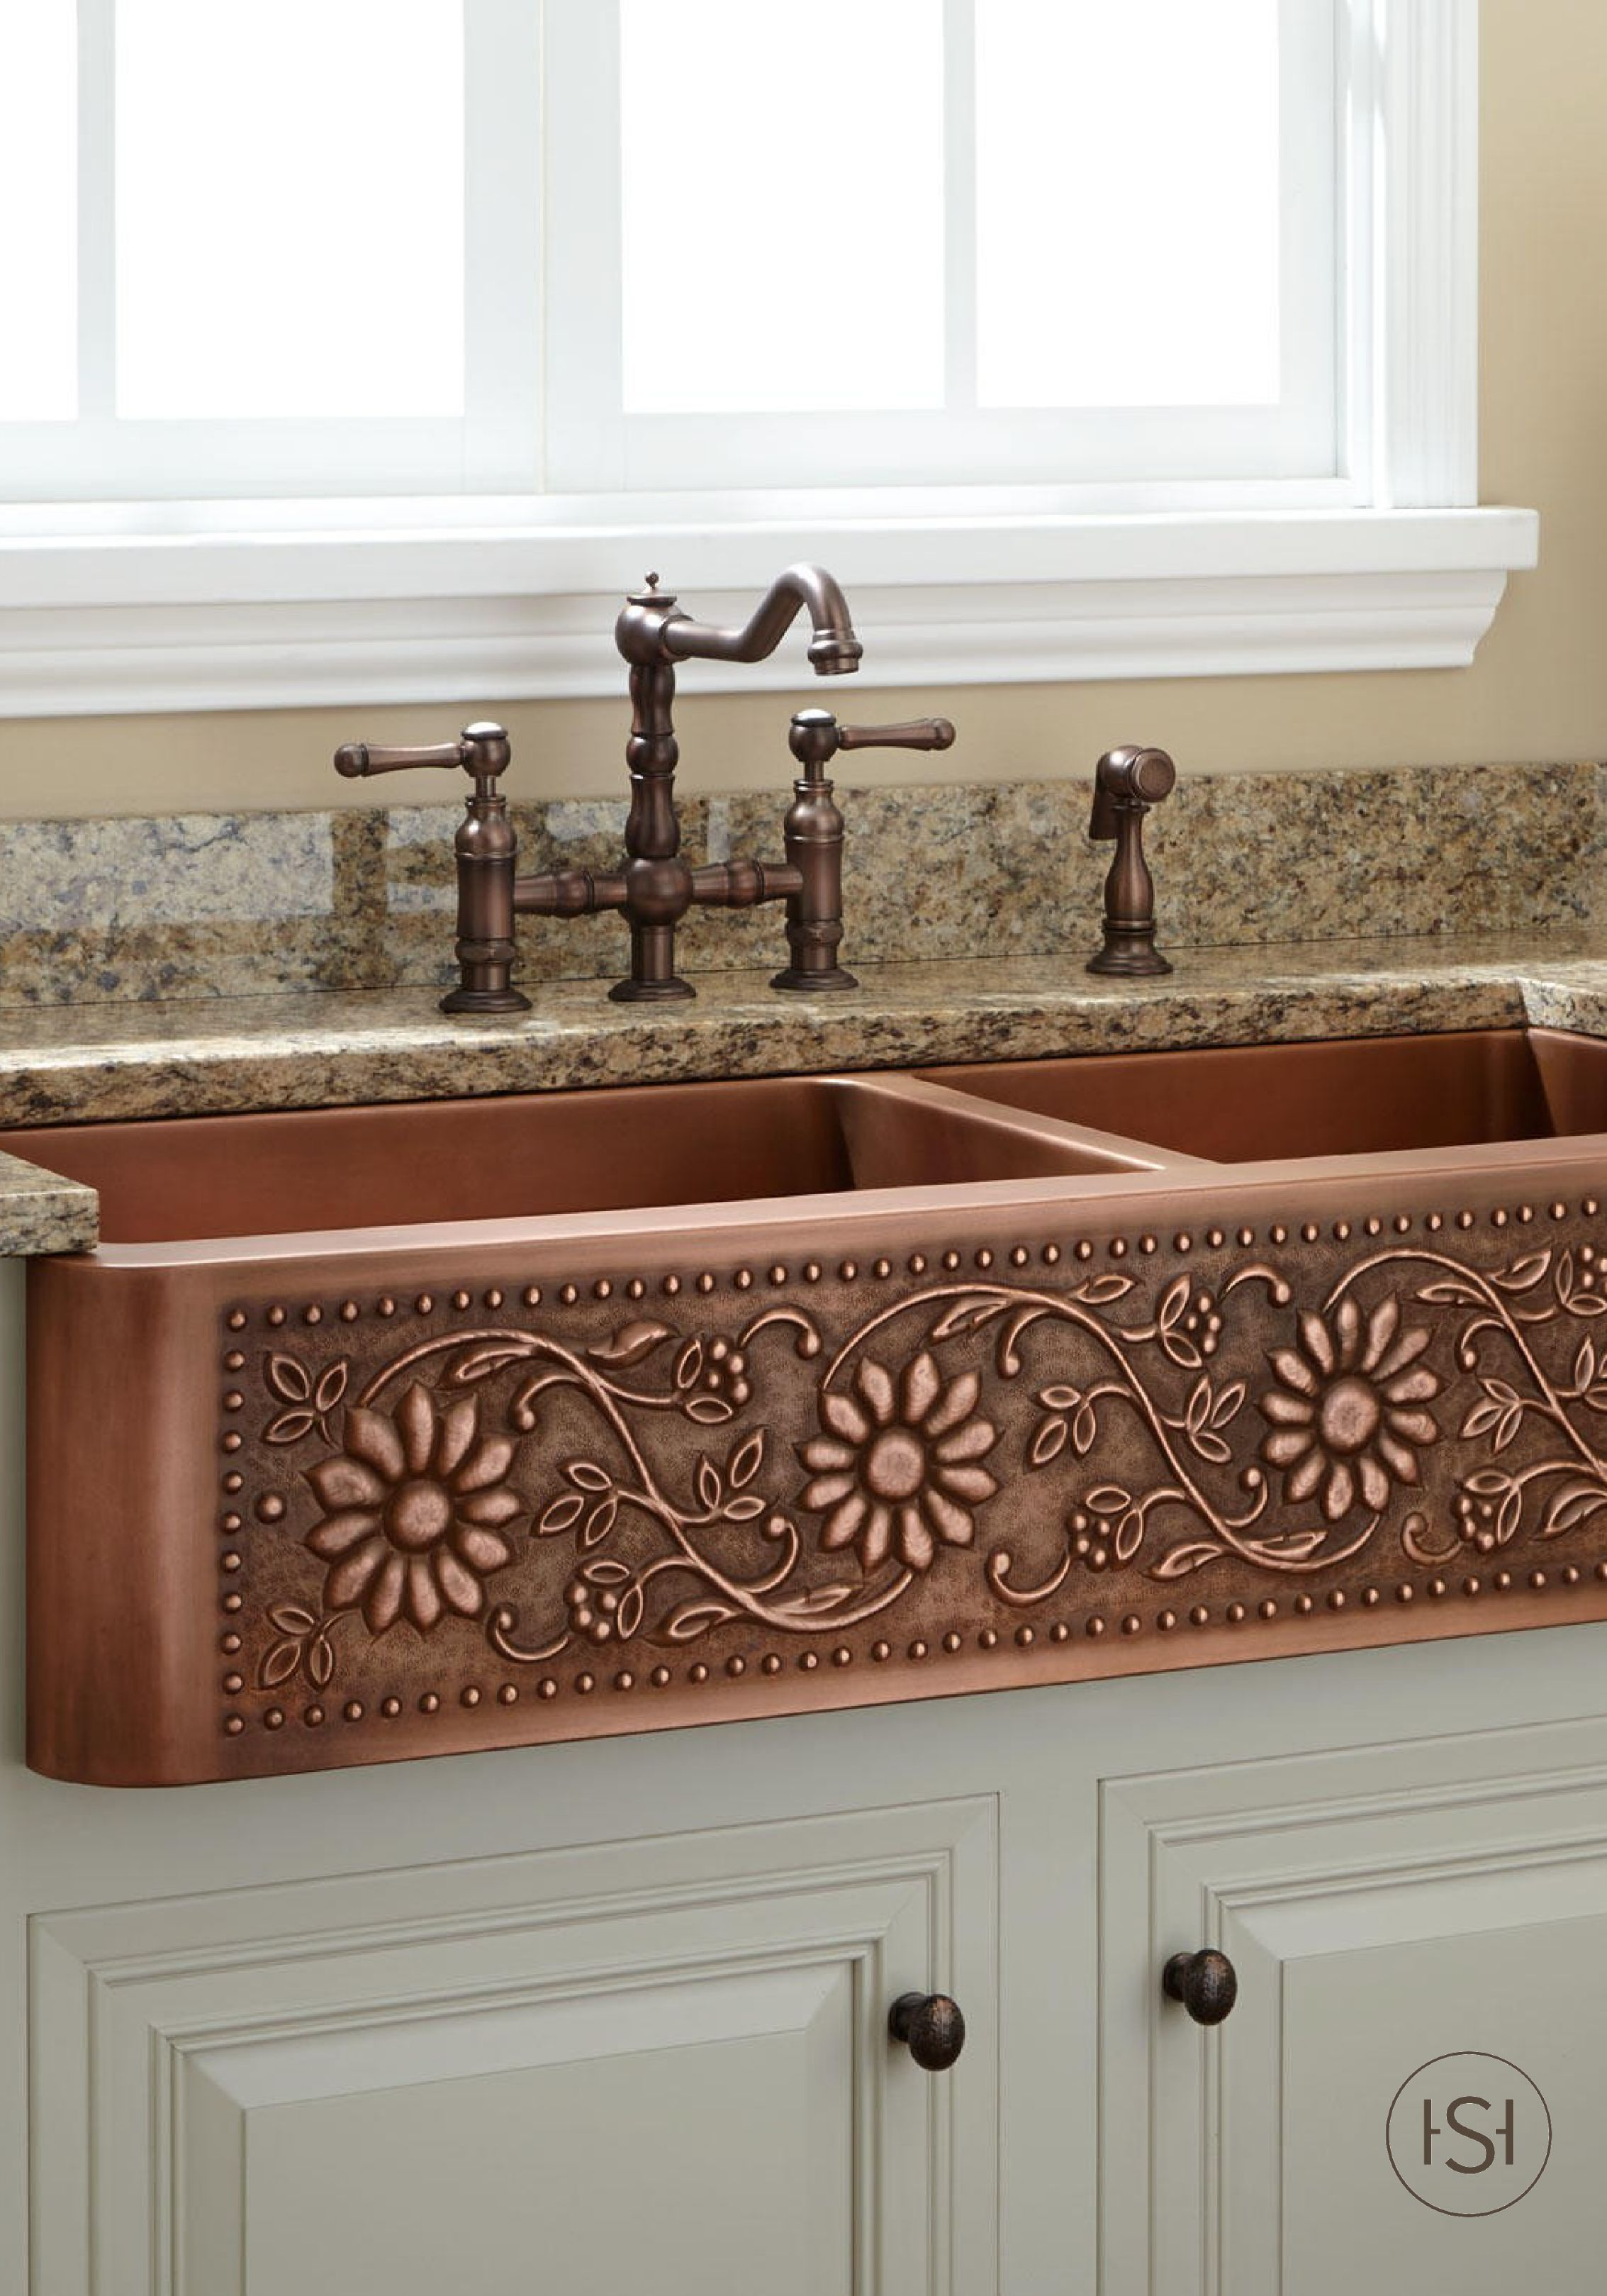 Bring warmth and style to your cottage-chic kitchen with a copper farmhouse sink with a sunflower design. Start planning your new kitchen renovation by re-pinning this lovely and unique sink.